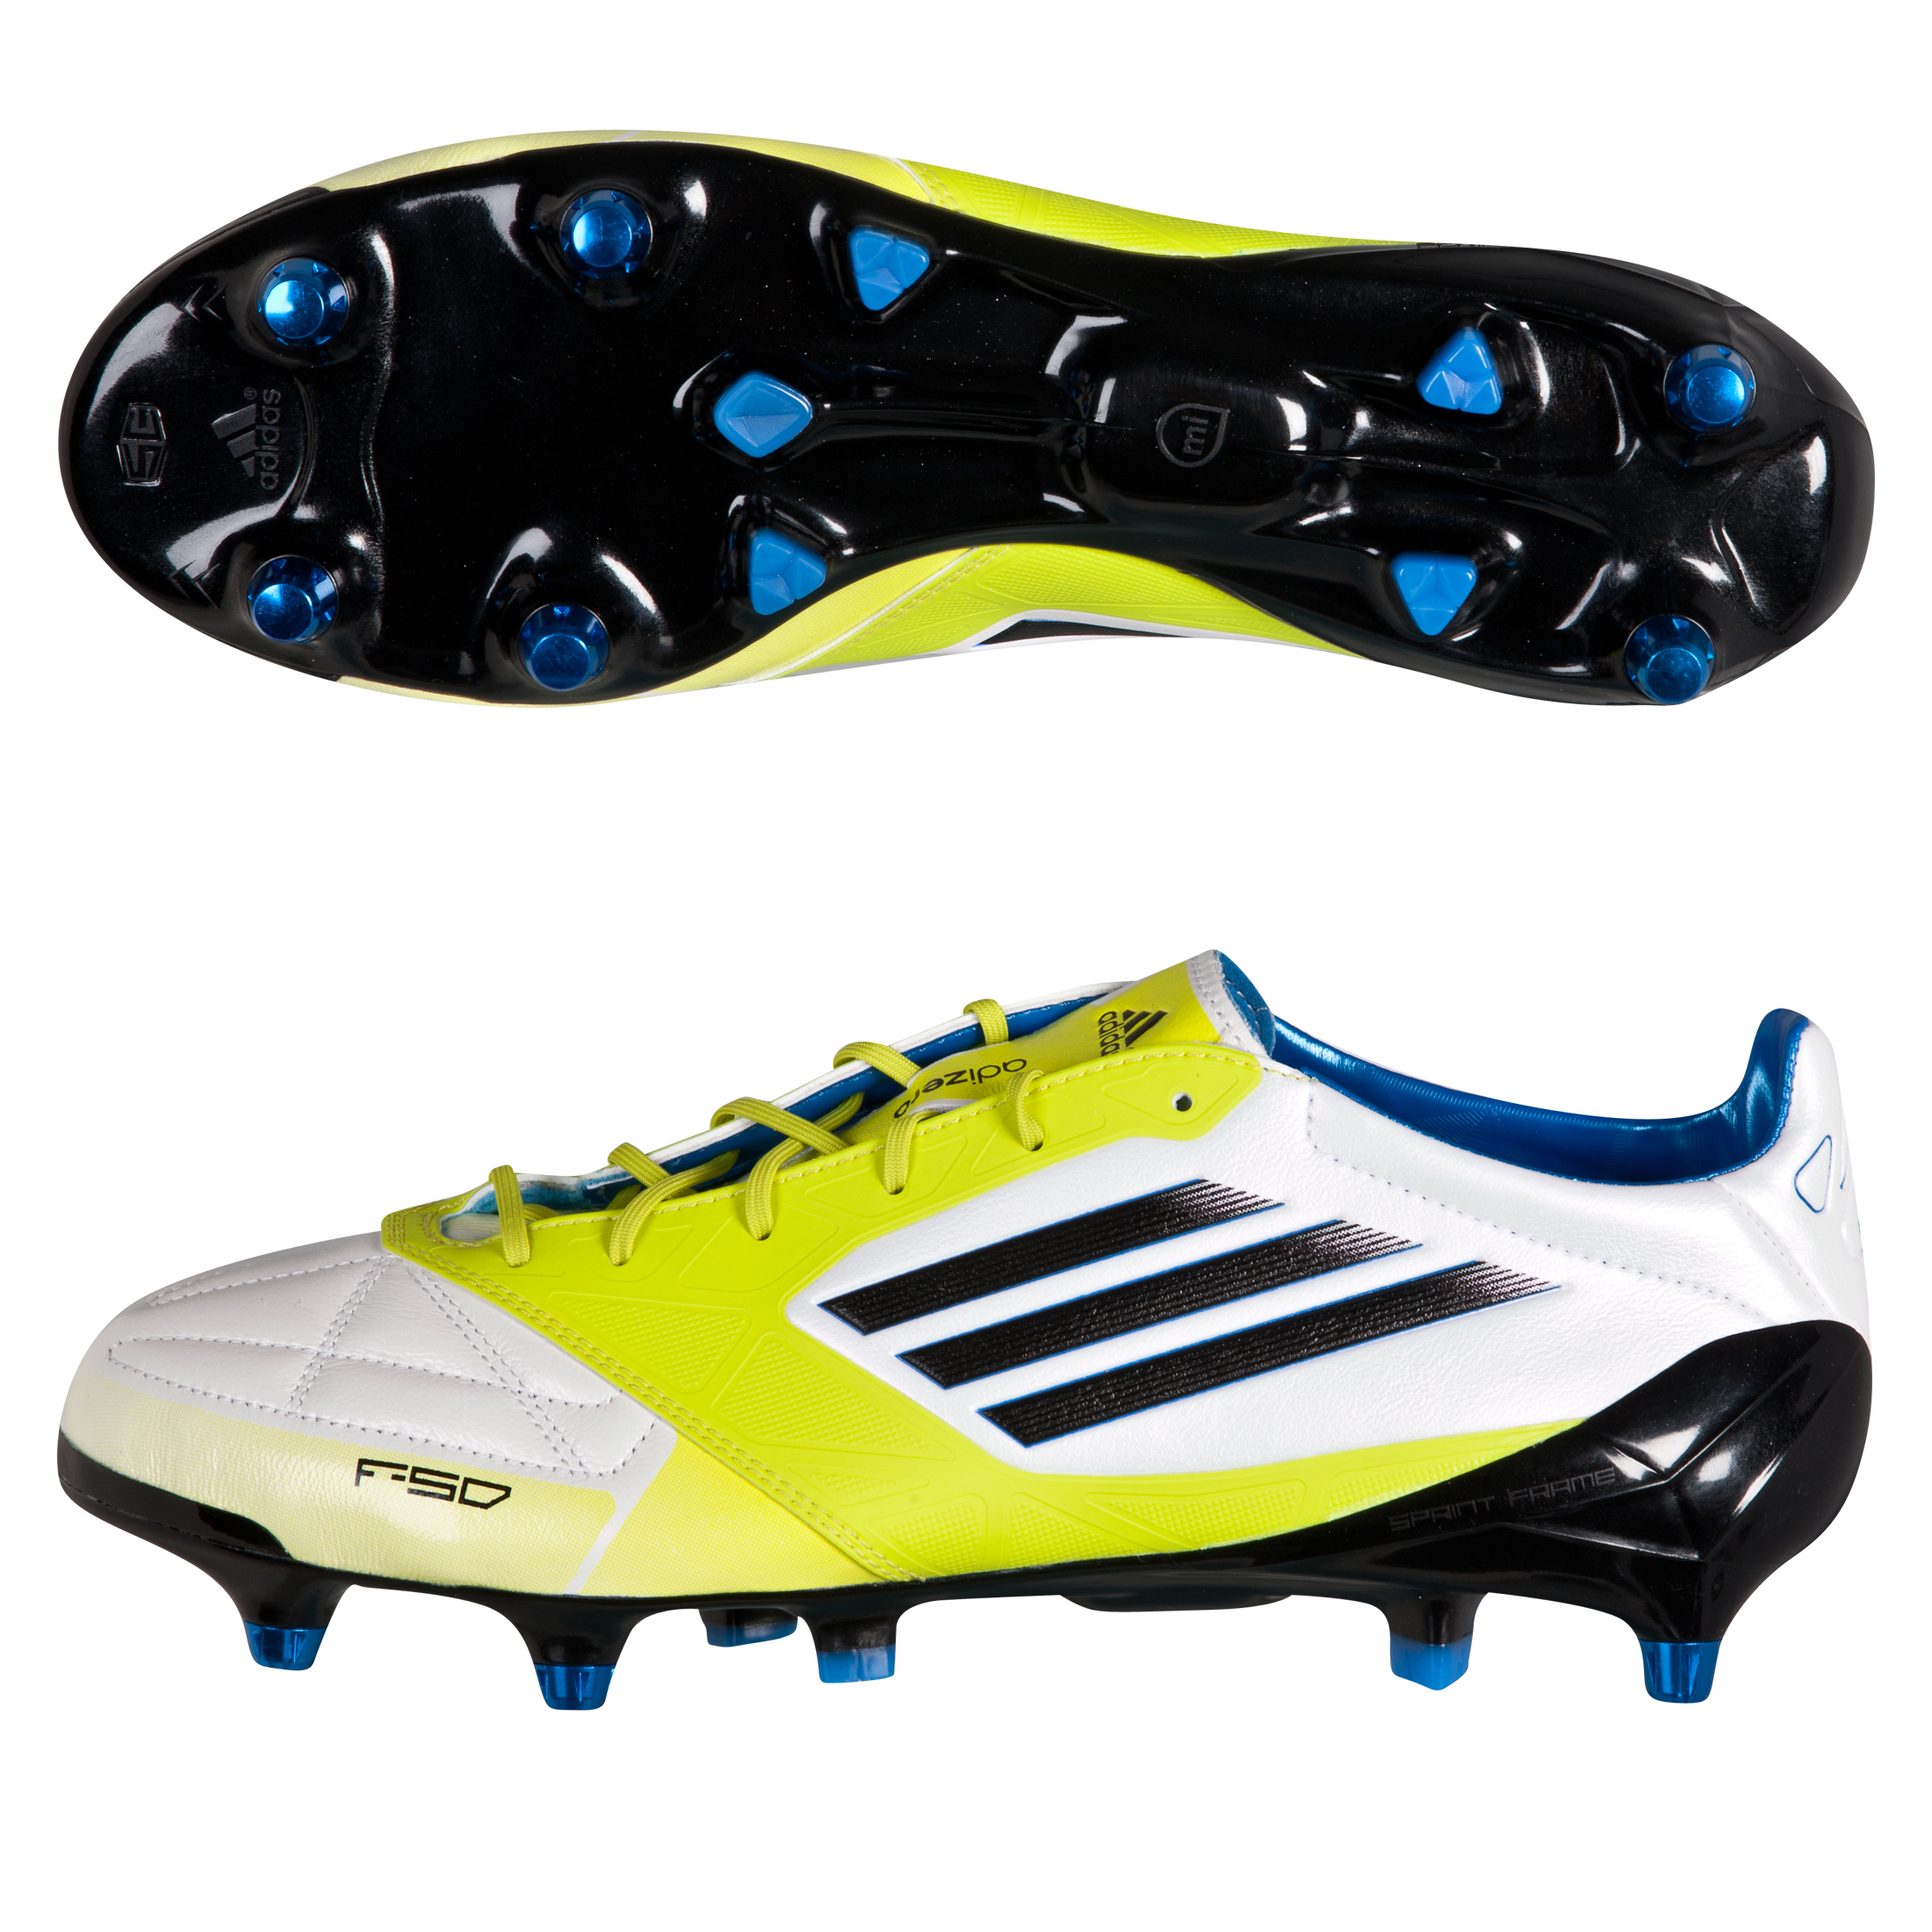 Adidas F50 Adizero XTRX Soft Ground Leather Football Boots - Running White/Black/Lab Lime